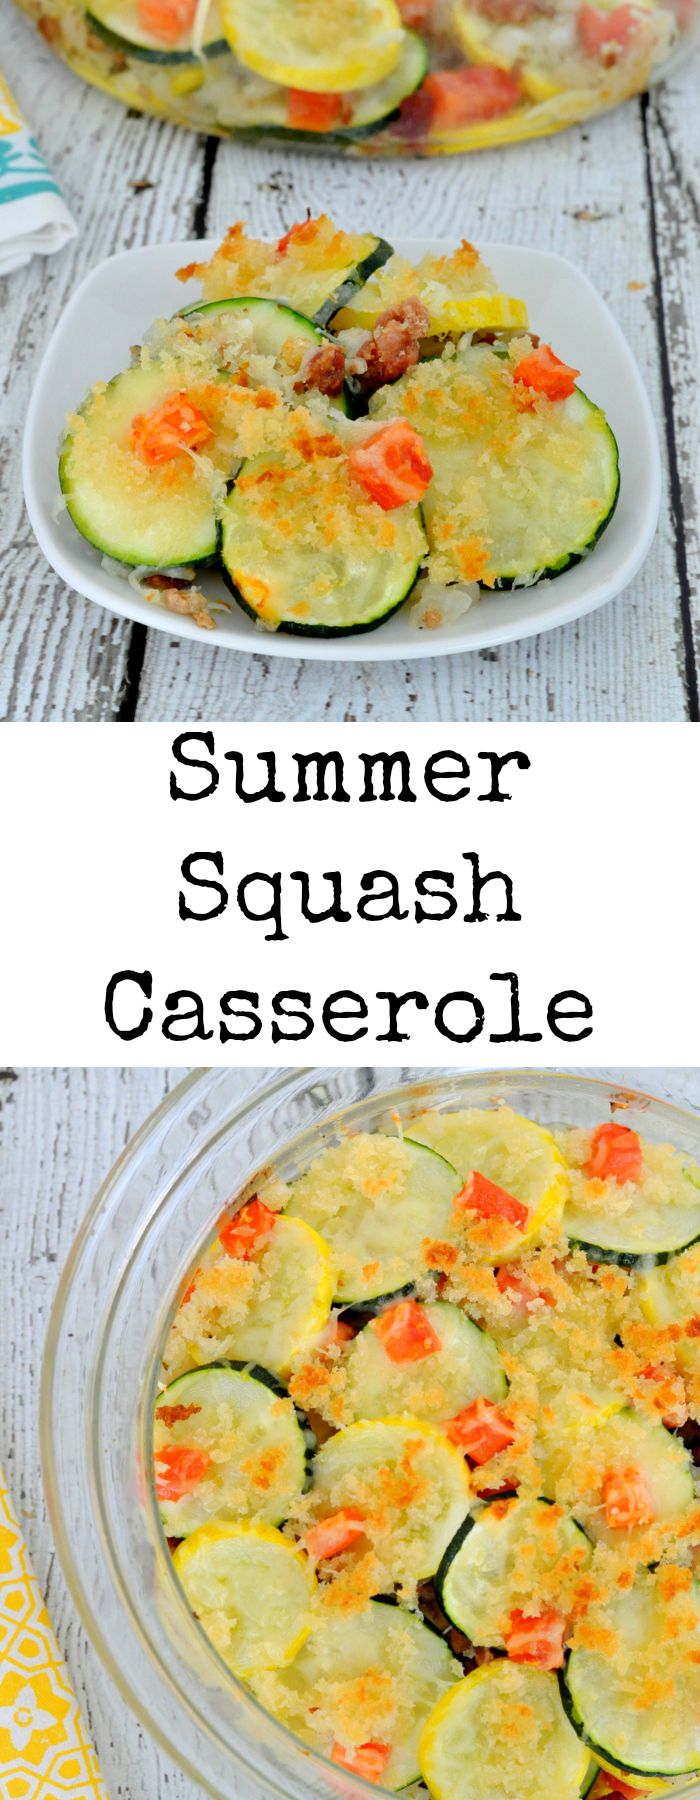 Southern Summer Squash Casserole